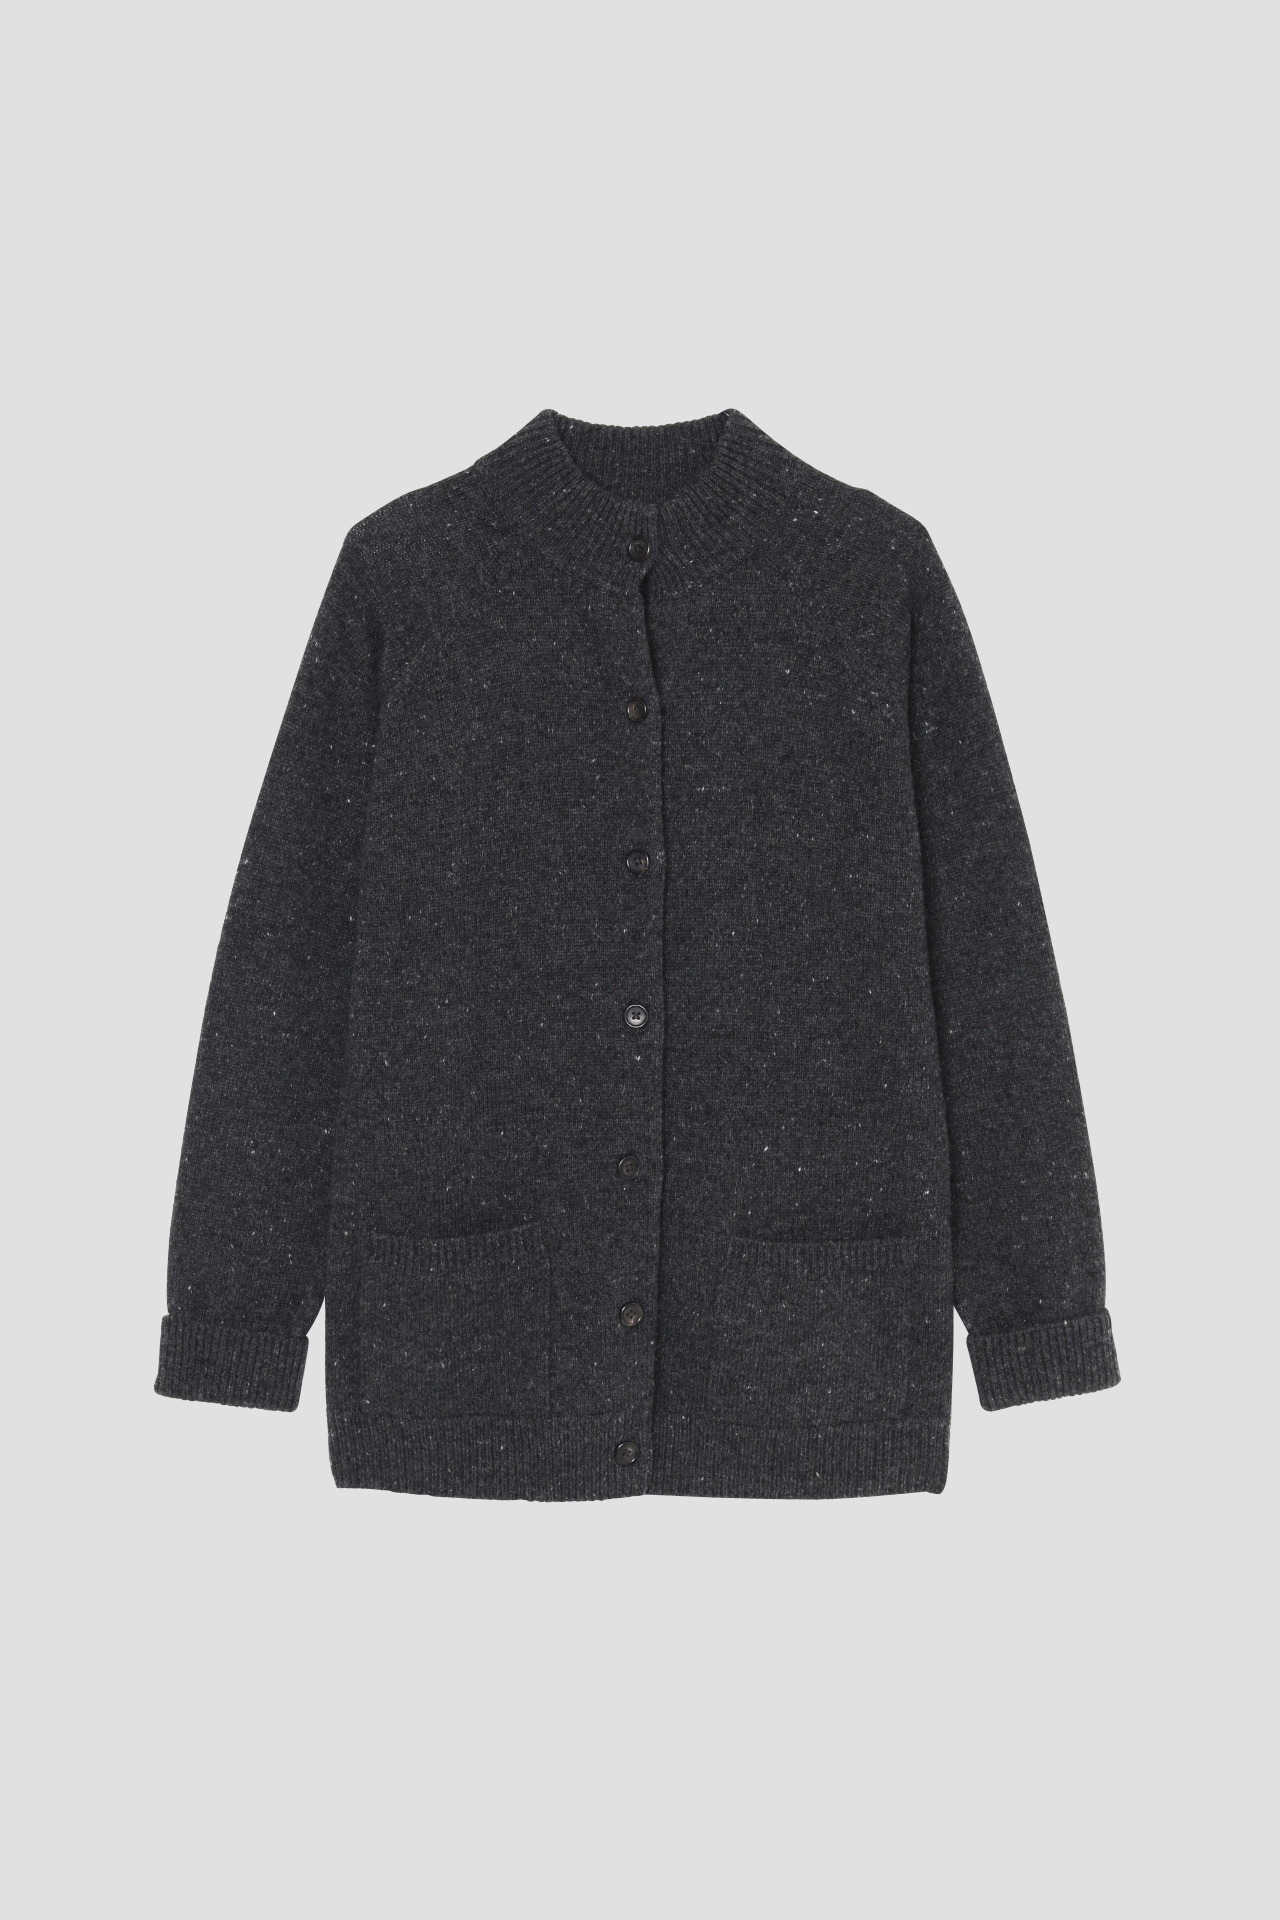 DONEGAL WOOL CASHMERE CARDIGAN4